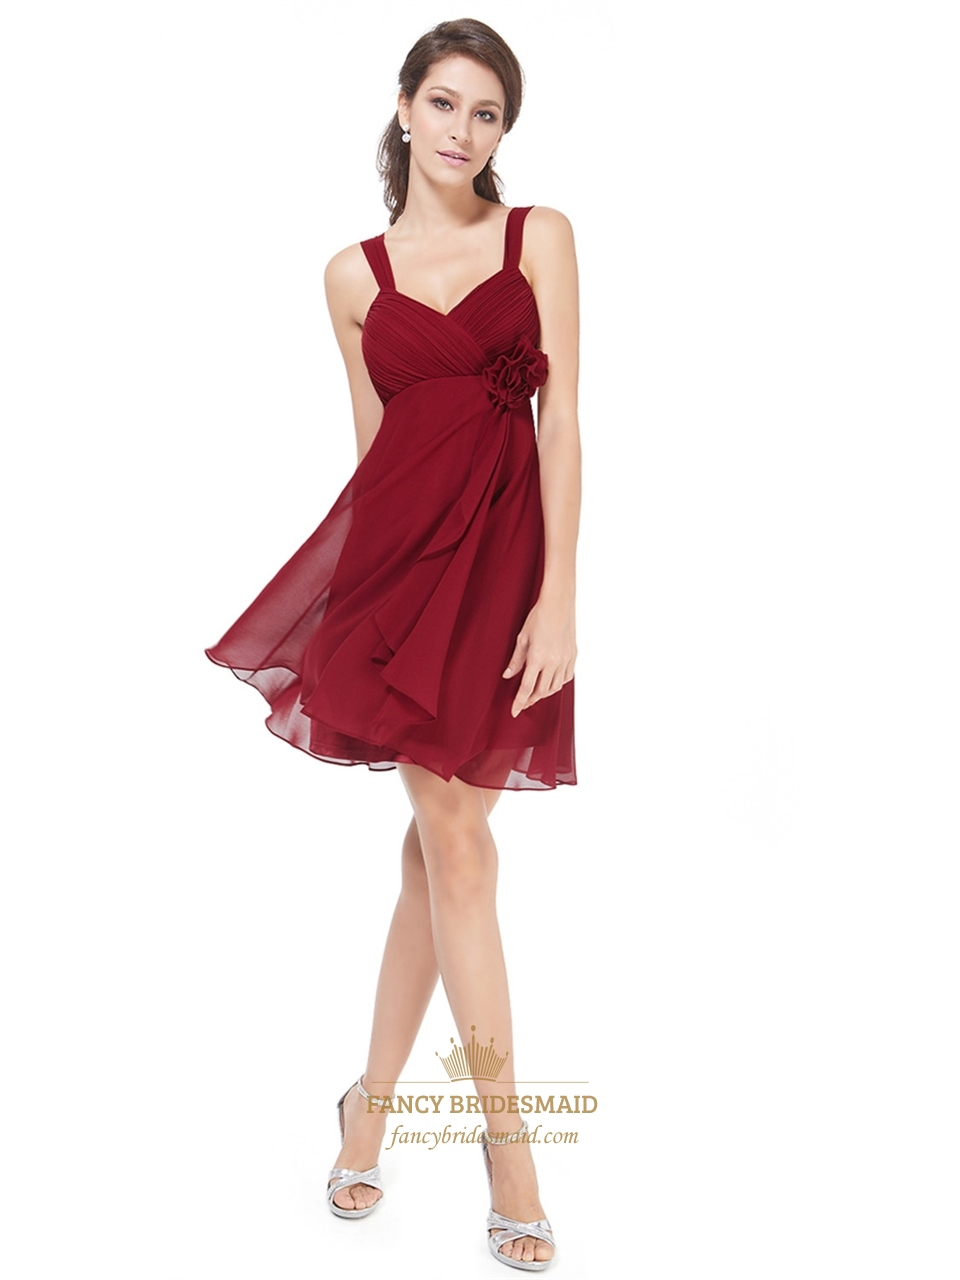 502d06ad5b8 Ruched Bodice Chiffon A-Line Short Bridesmaid Dress With Straps. Product  Photos. Color